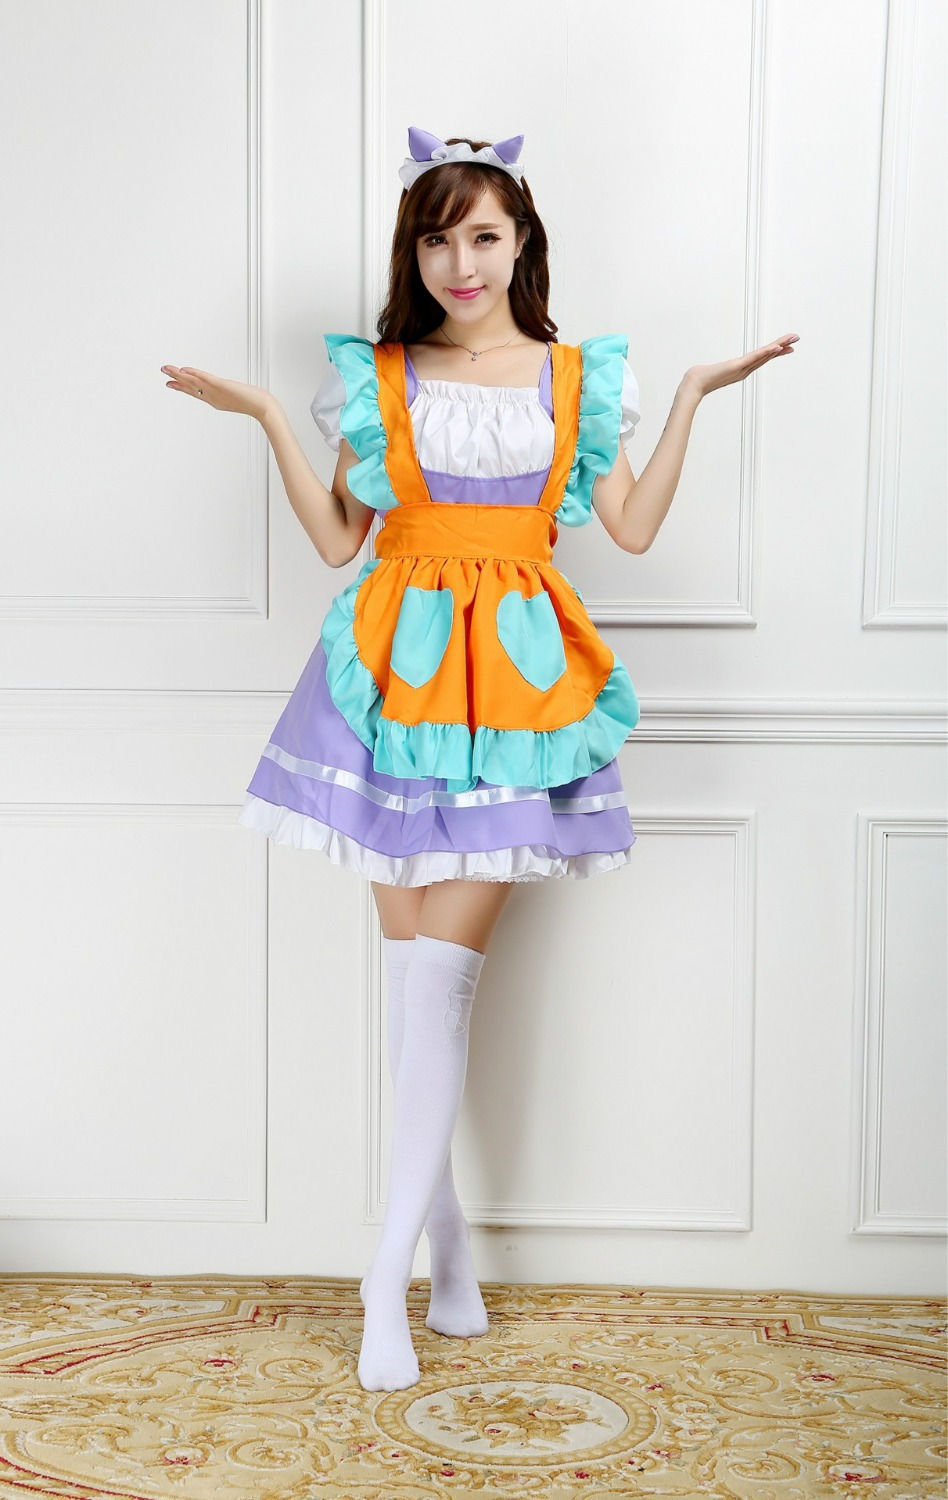 Ensen Lovely lolita purple dress cute uniform temptation maid skirt erotic fantasia women Halloween cosplay Costumes for Womens